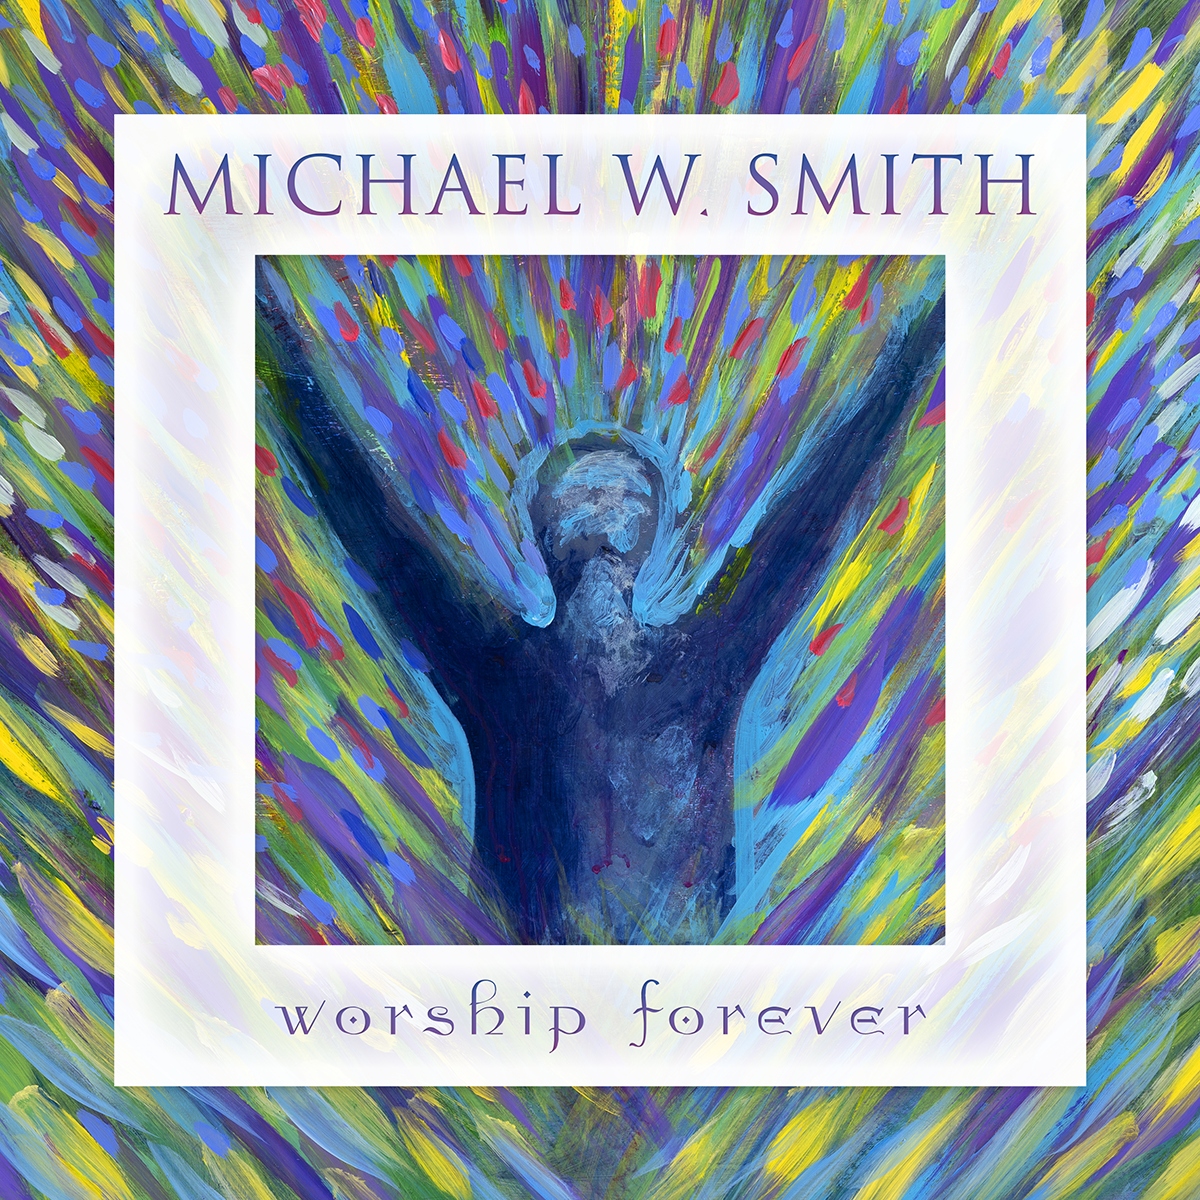 Michael W. Smith To Re-Record 'Worship' Album Live In Nashville With  Special Guests - MusicRow.com